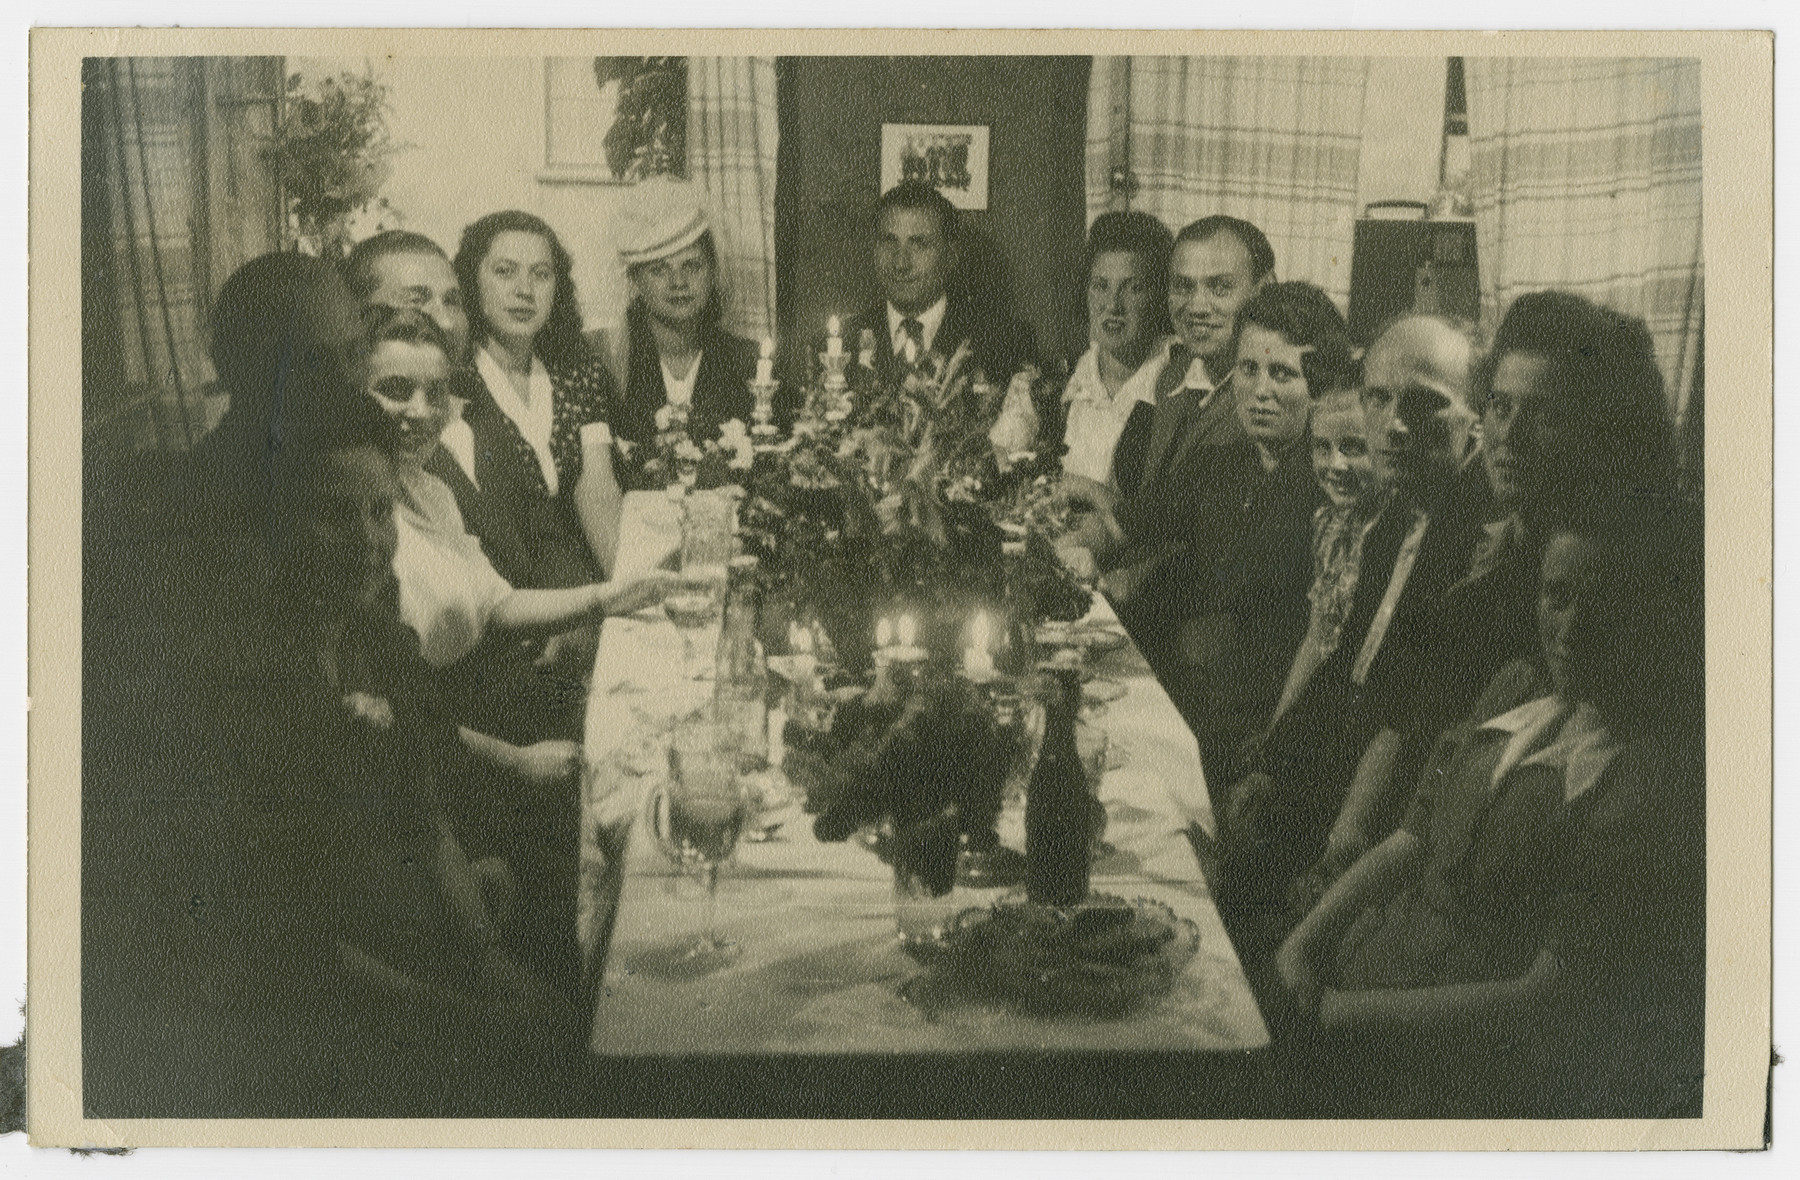 Jewish displaced persons sit down to a festive meal, possibly in Weiden.